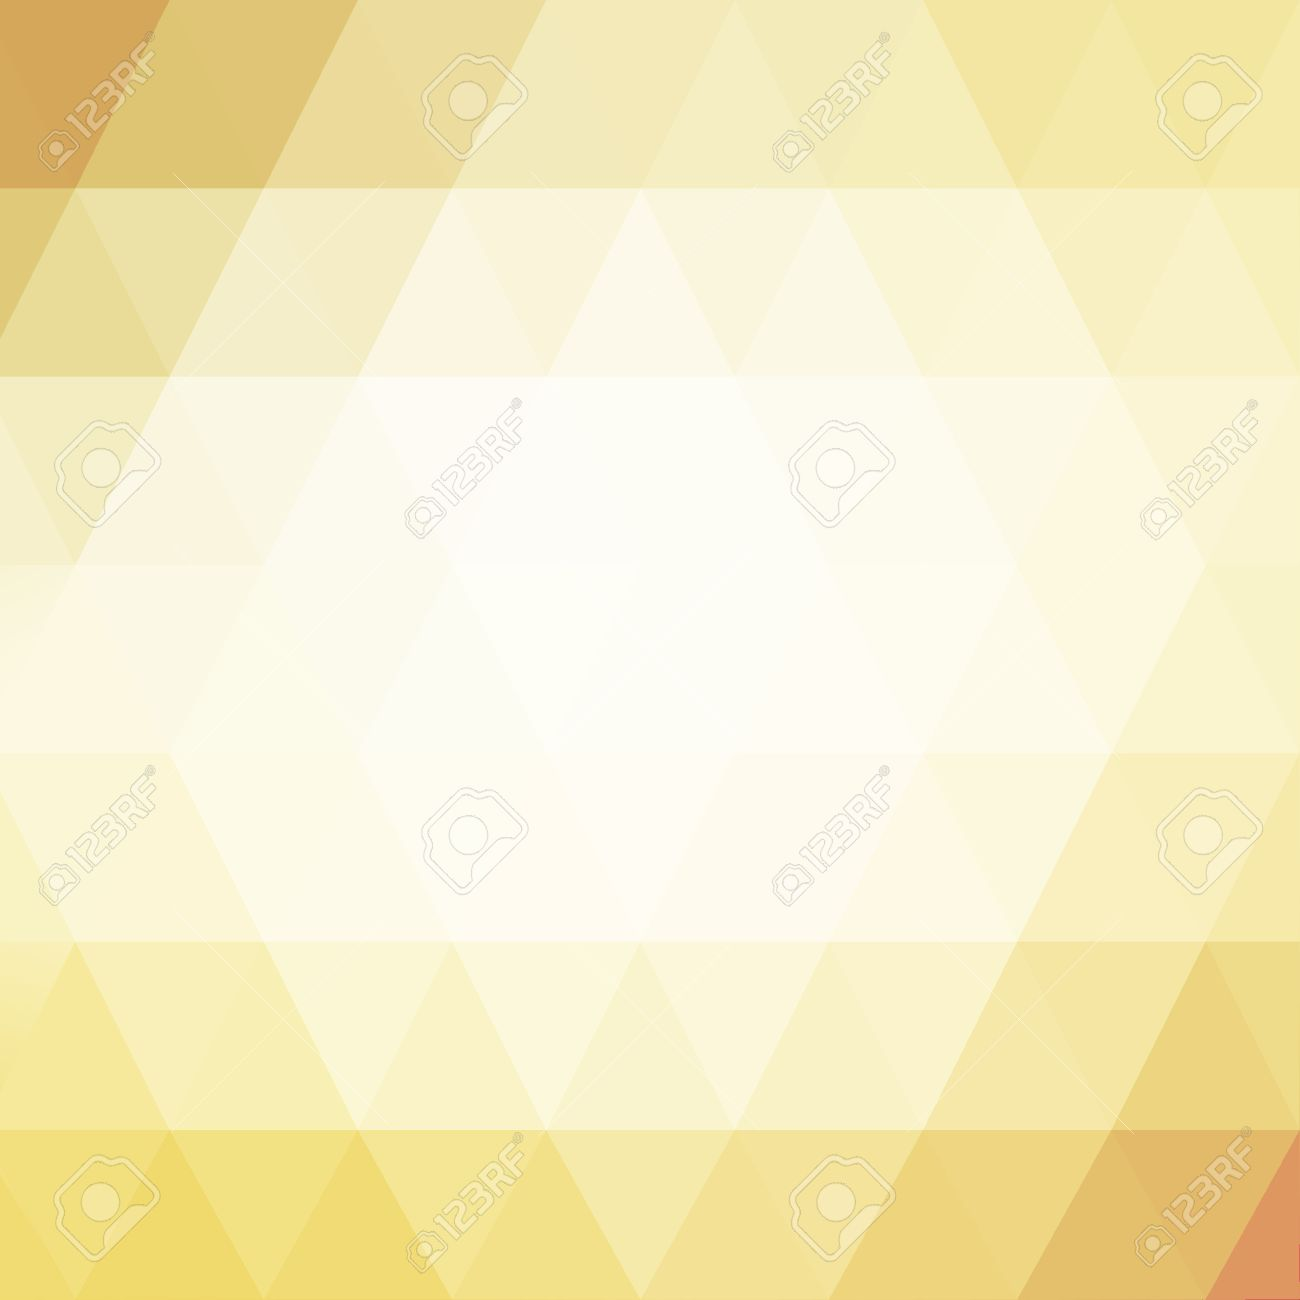 Off white diagonal striped plastic texture picture free photograph - Angled Paper Abstract Gold Low Poly Triangle Shapes In Mosaic Pattern Of Diamonds In Diagonal